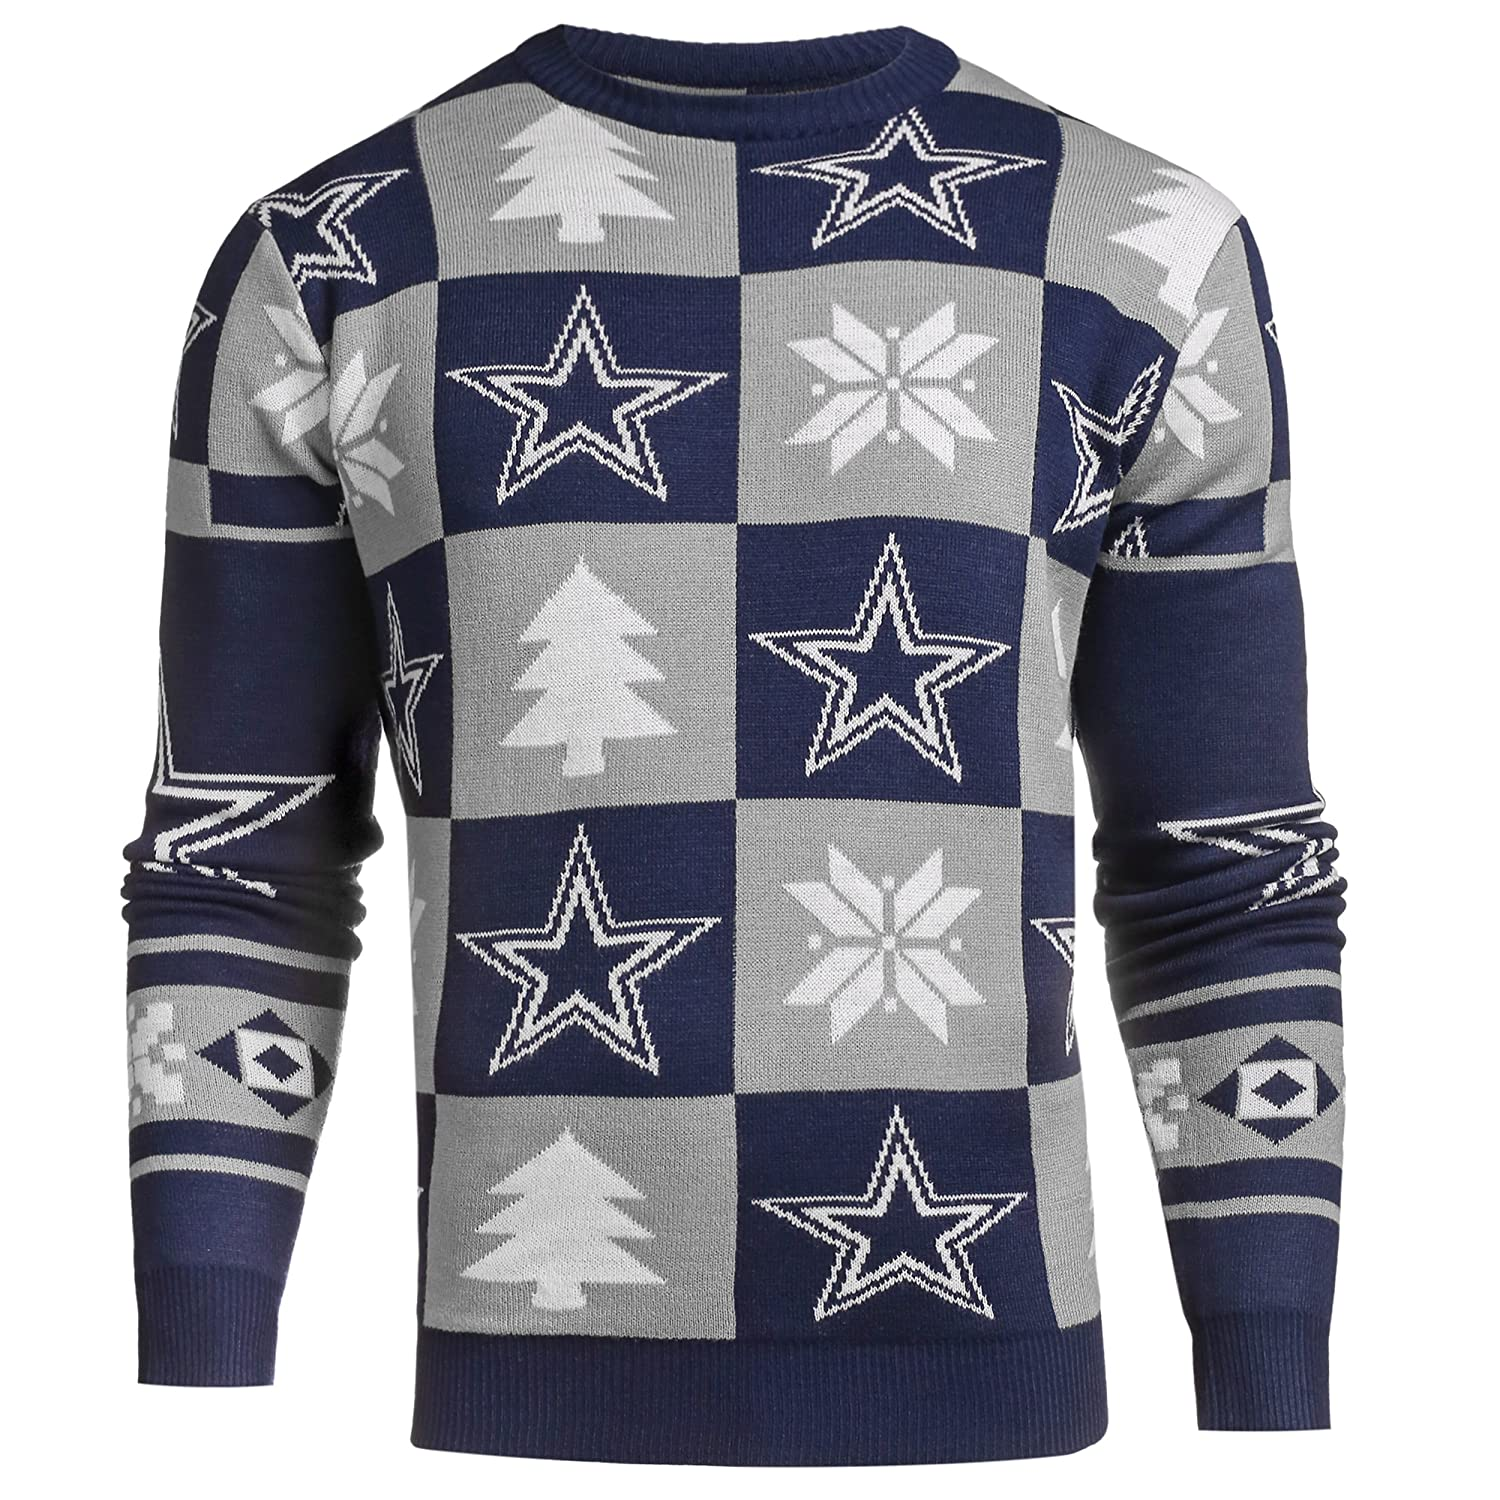 DALLAS 2016 PATCHES UGLY SWEATER